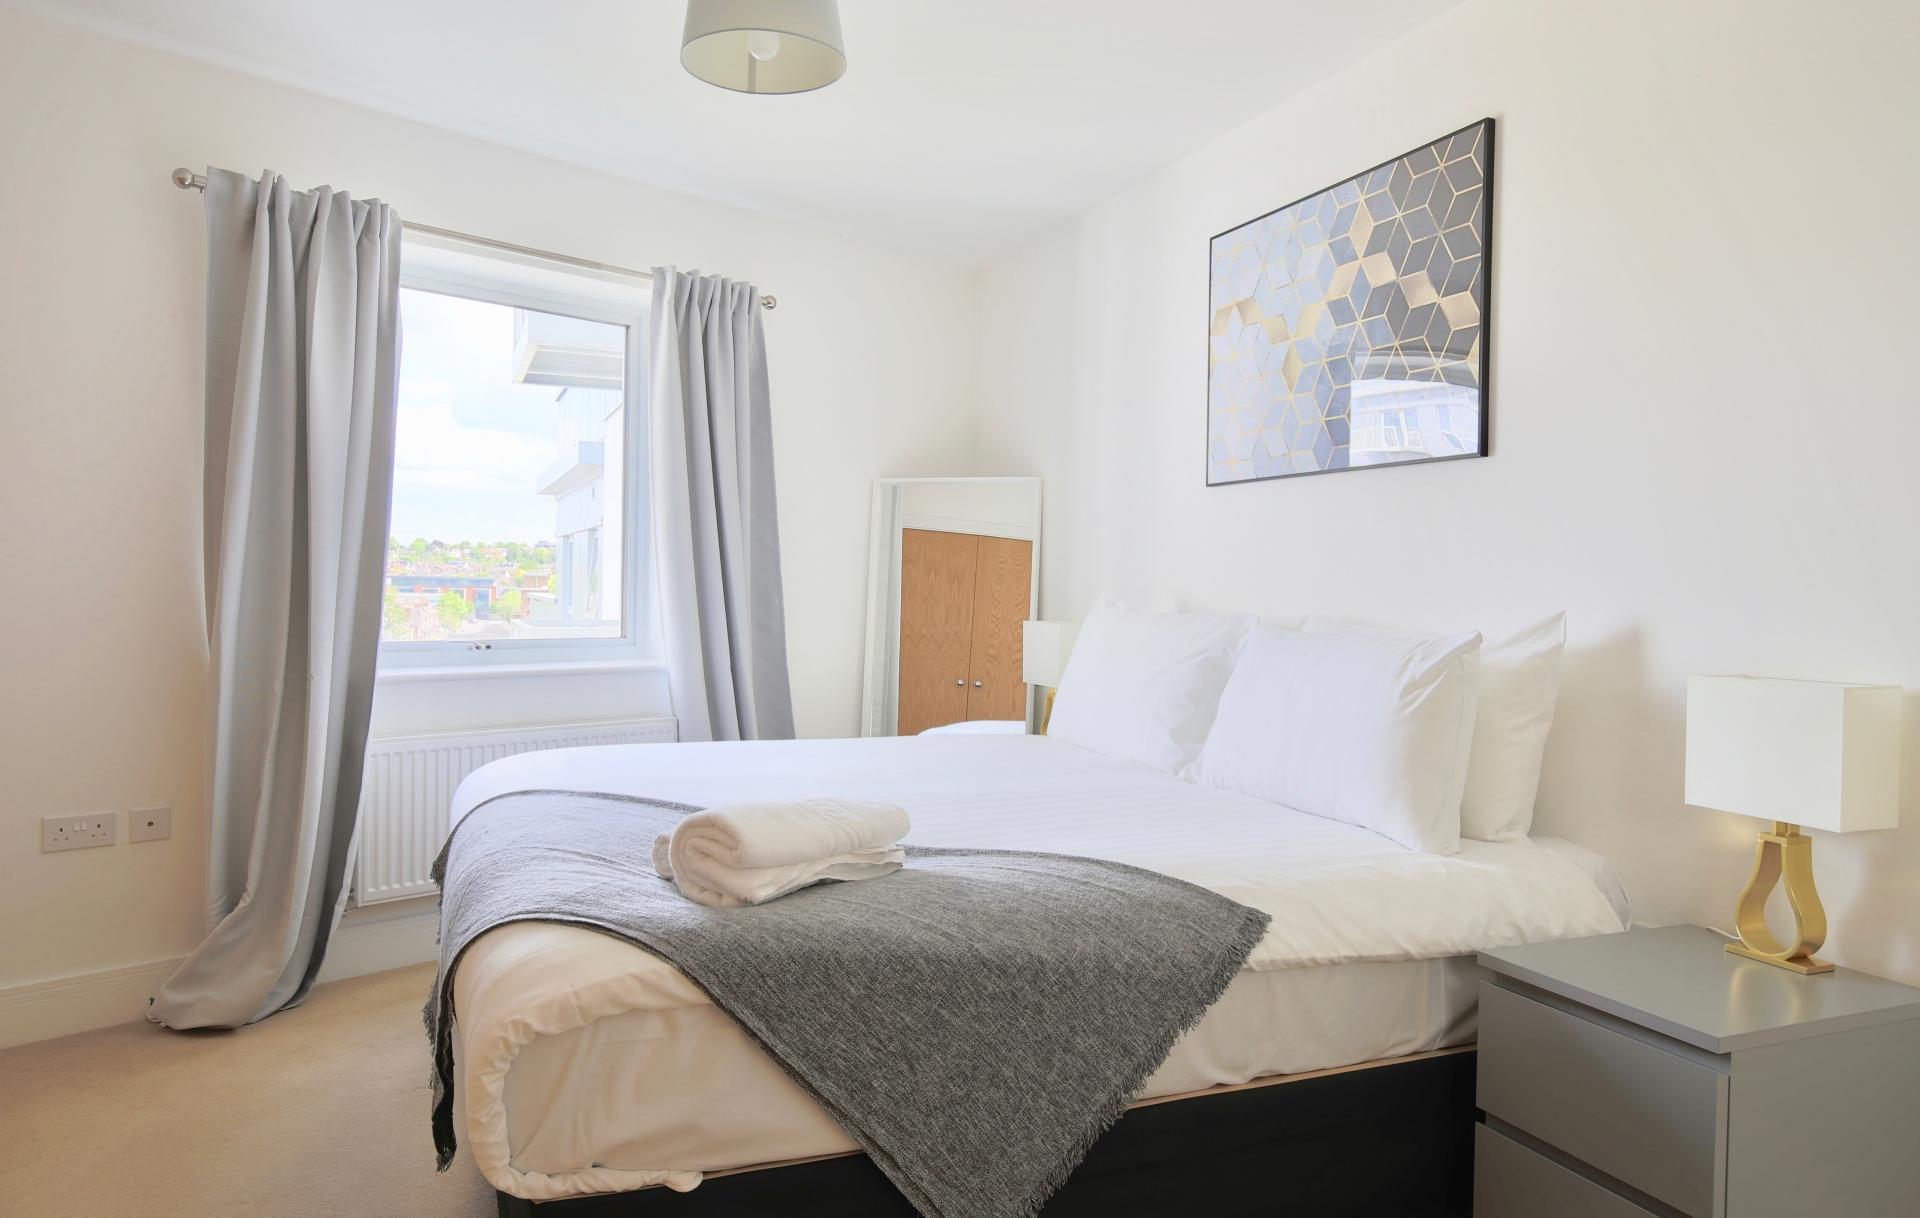 Bedroom at Austen House, Centre, Guildford - Citybase Apartments